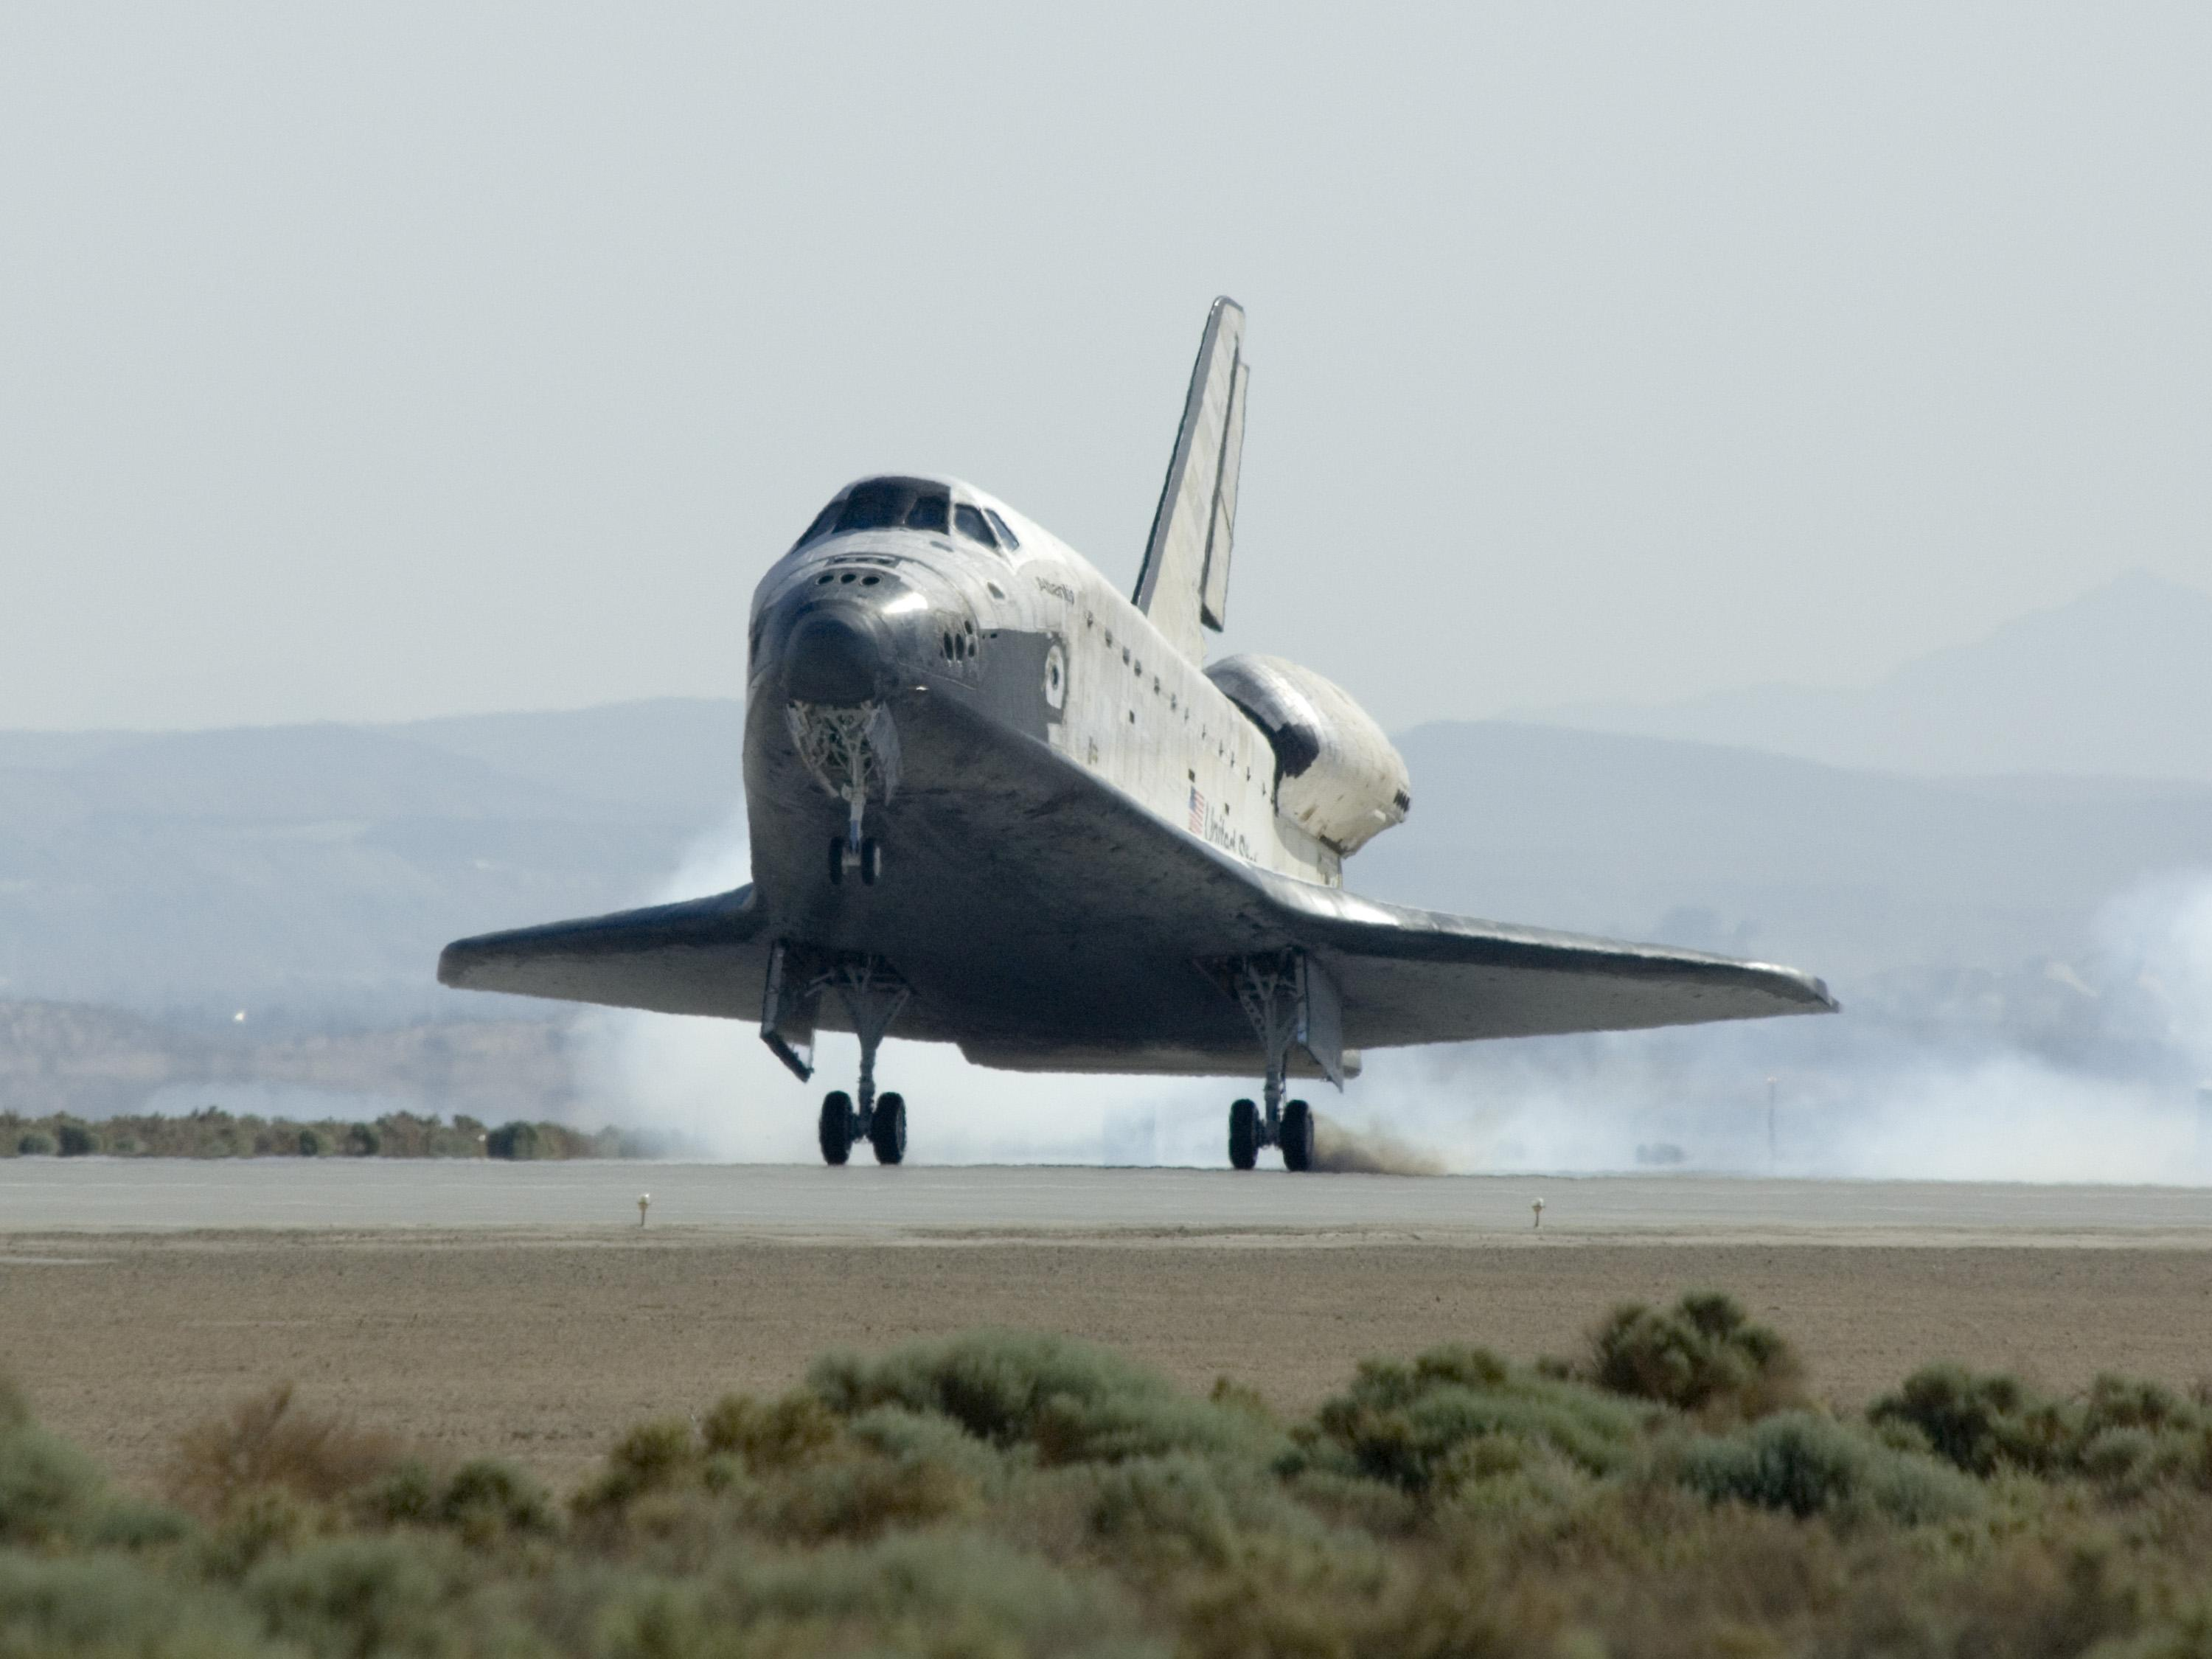 space shuttle landing explained - photo #42